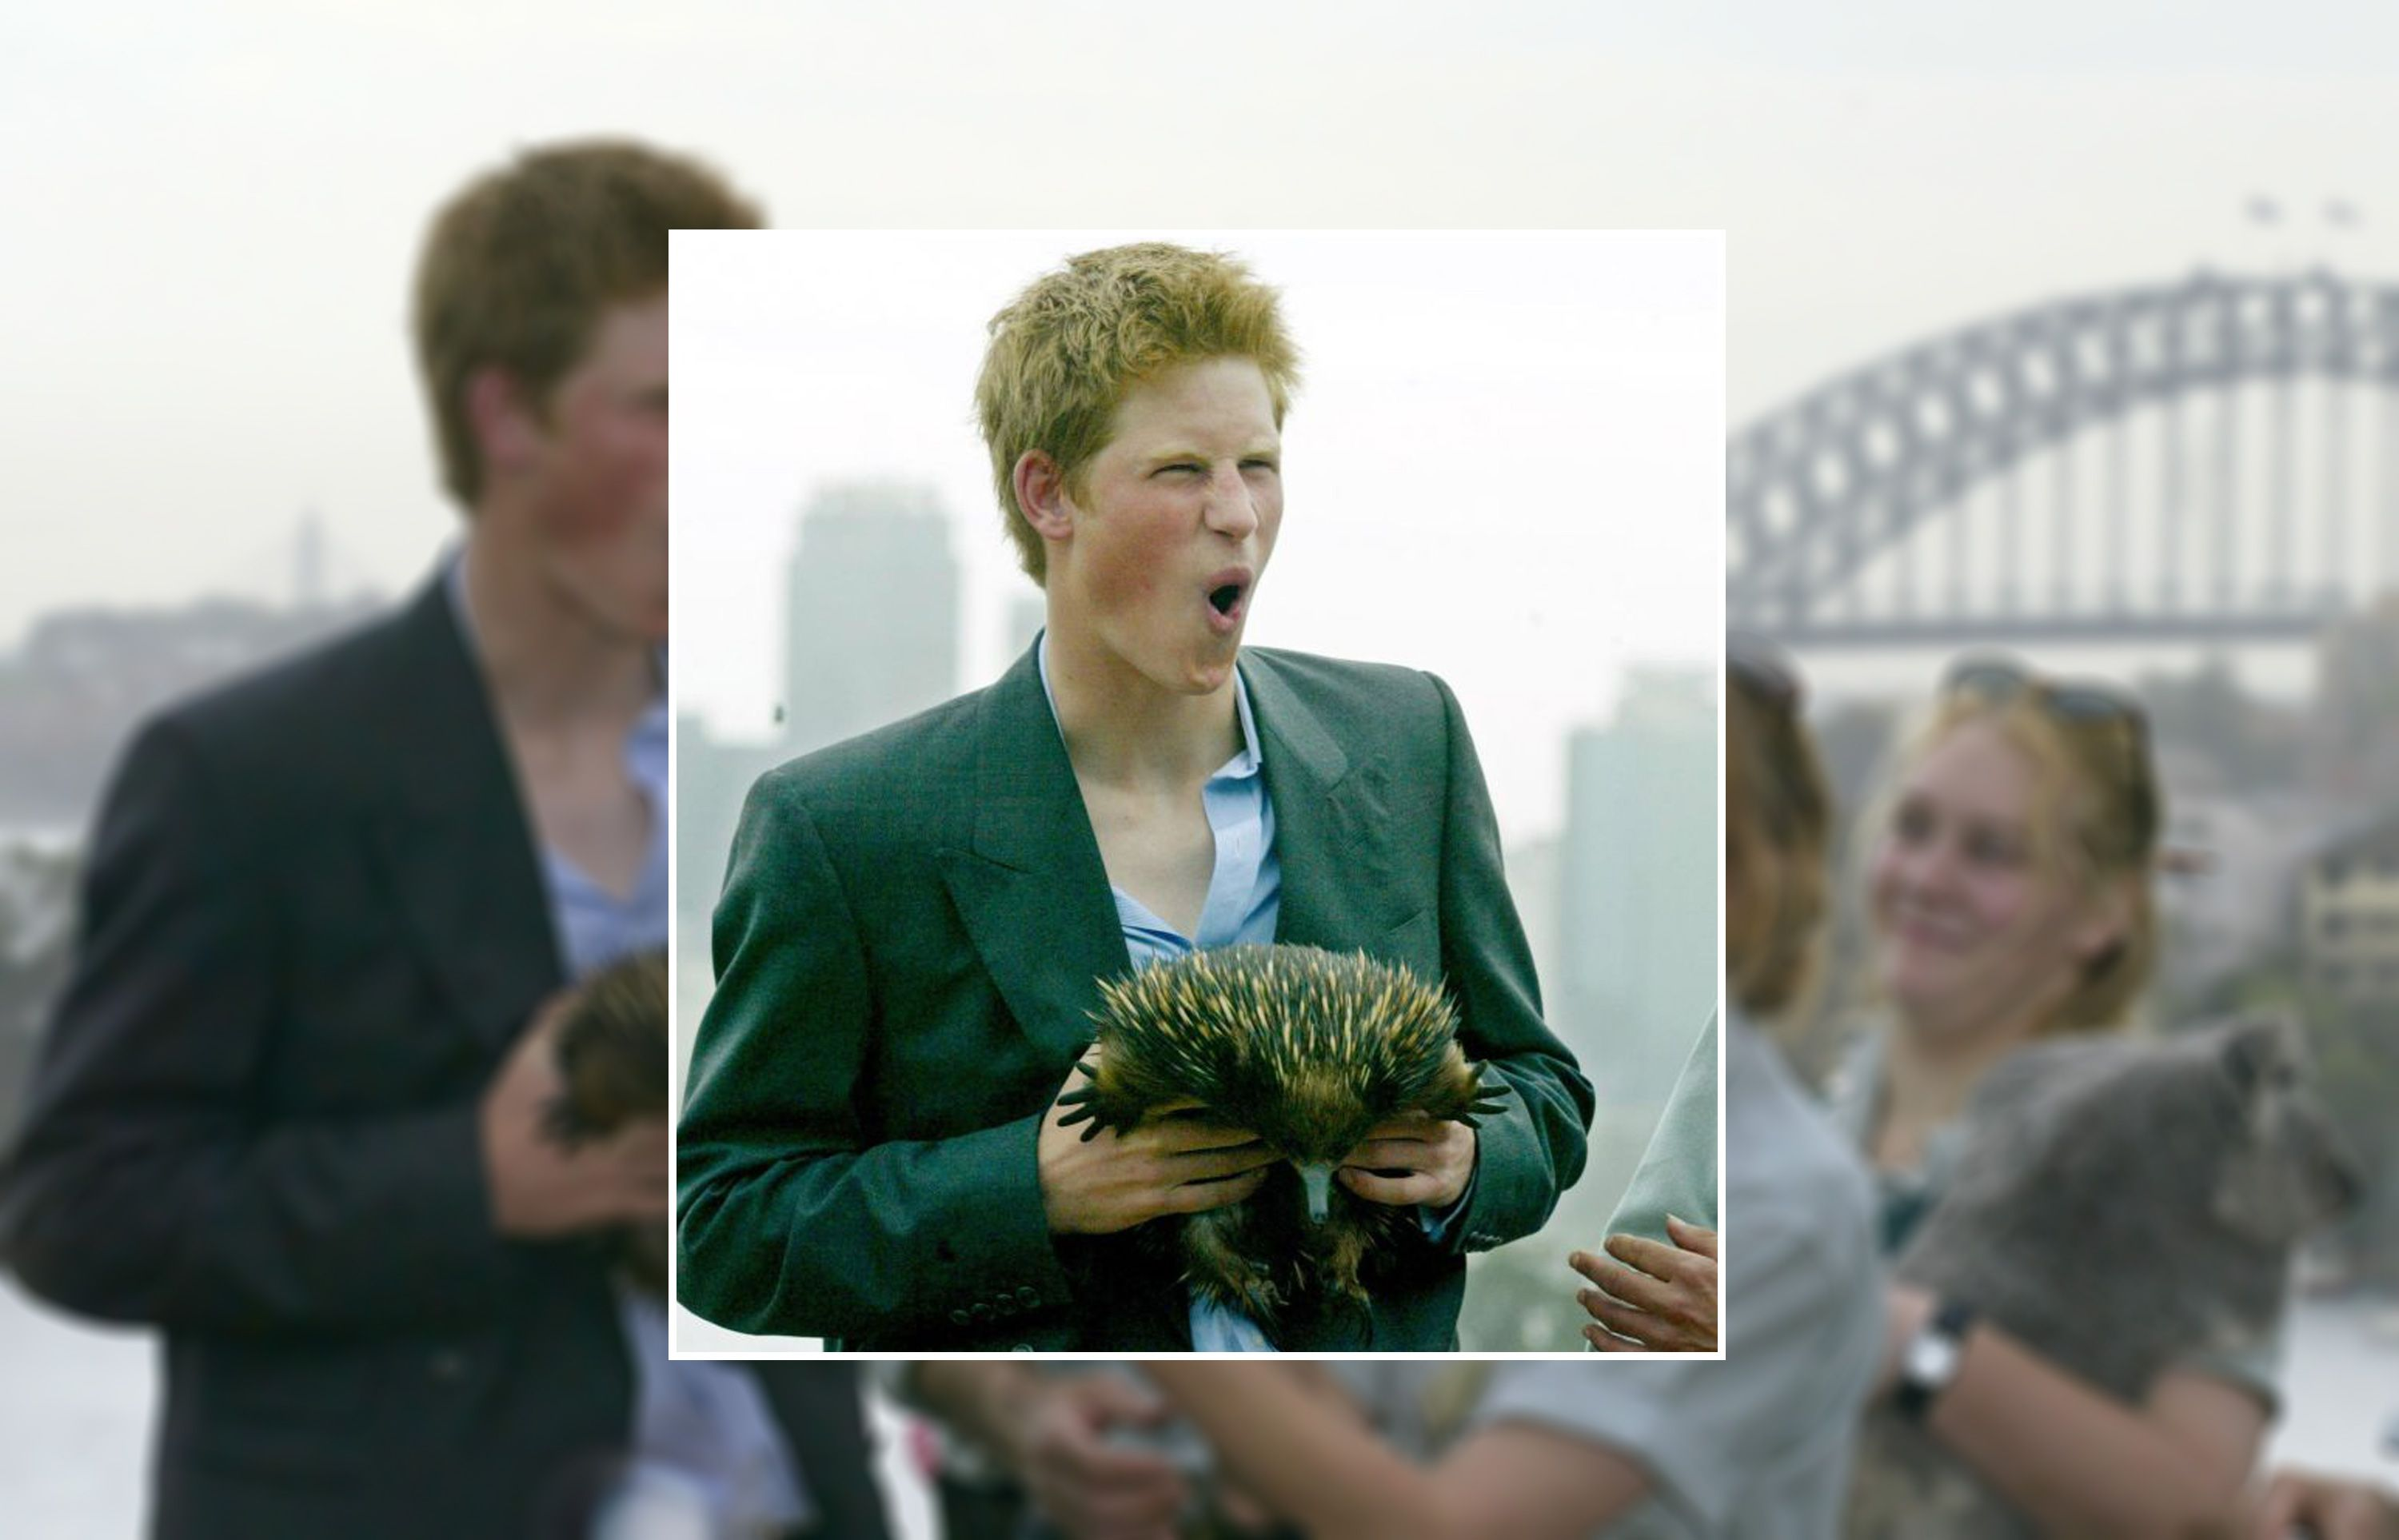 Prince Harry had the time of his life in Australia back in 2003